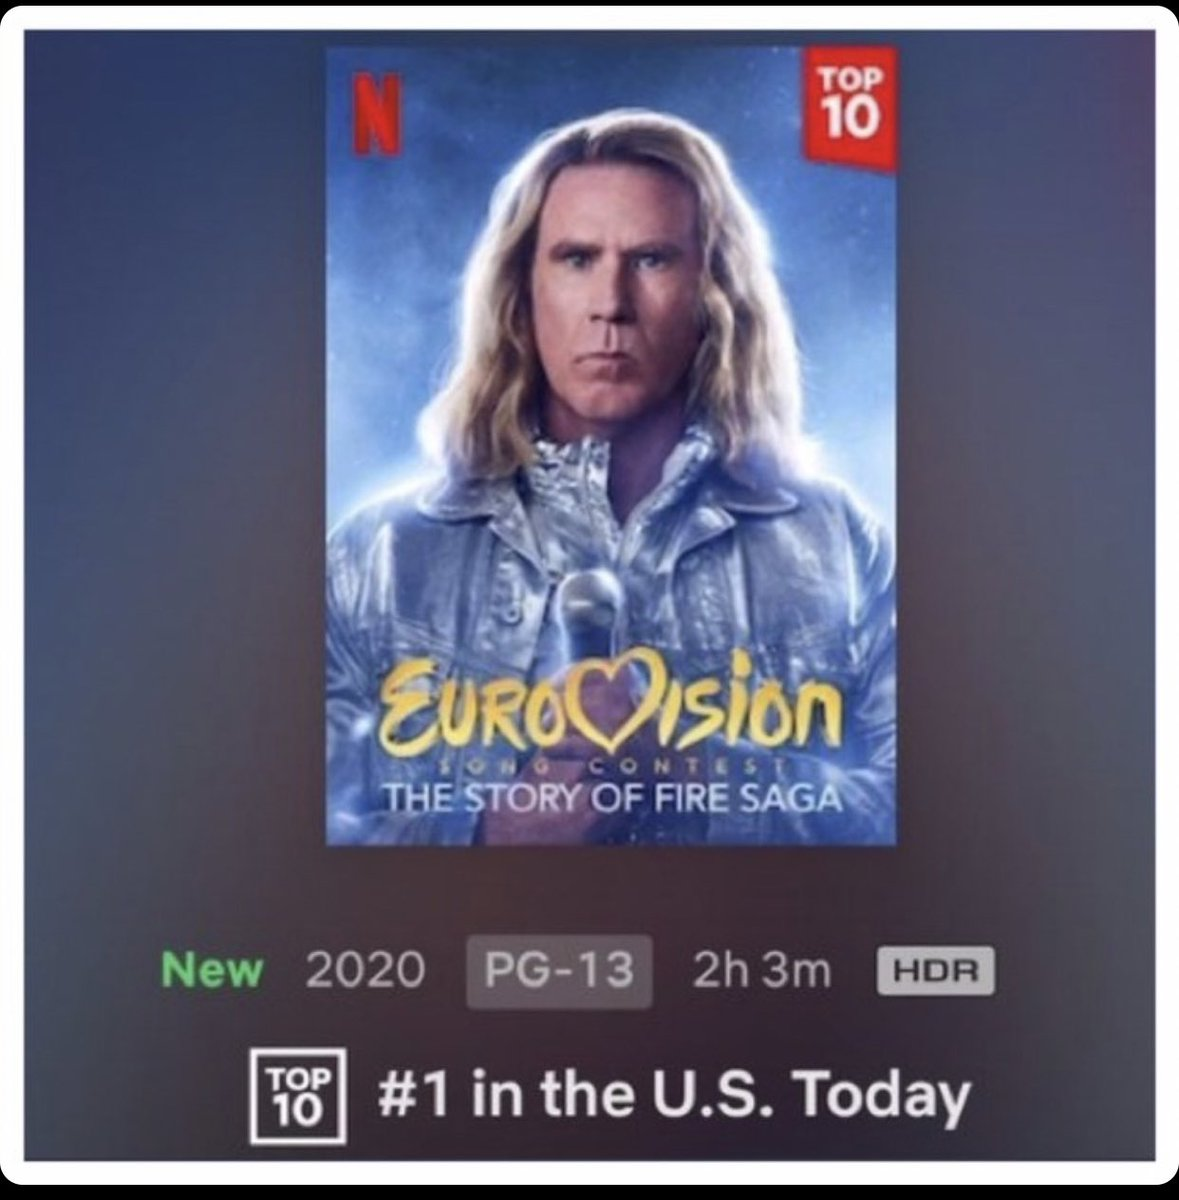 Thank you all!! Eurovision is the film most seen in the UK and USA. #eurovisionnetflix https://t.co/9N8HE3gWnG